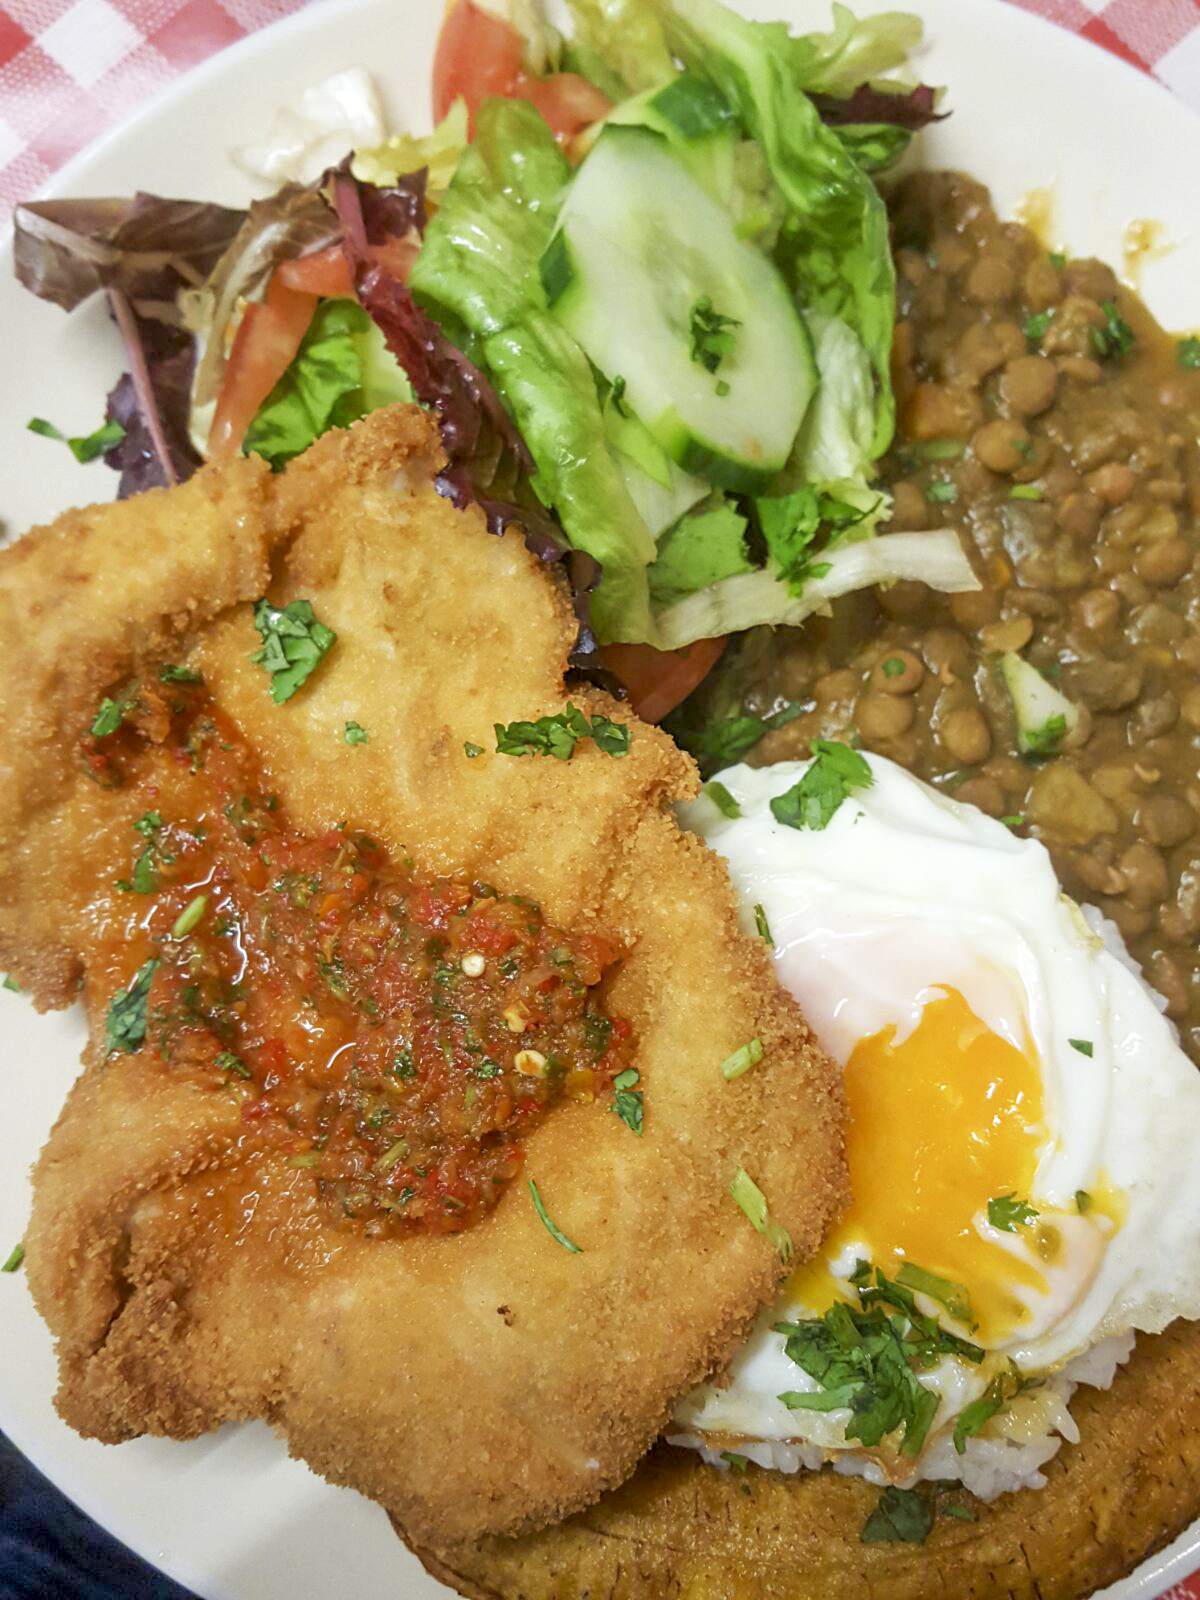 fried chicken main with lentils, rice, egg, salad and plantain, El Arepazo, Holloway